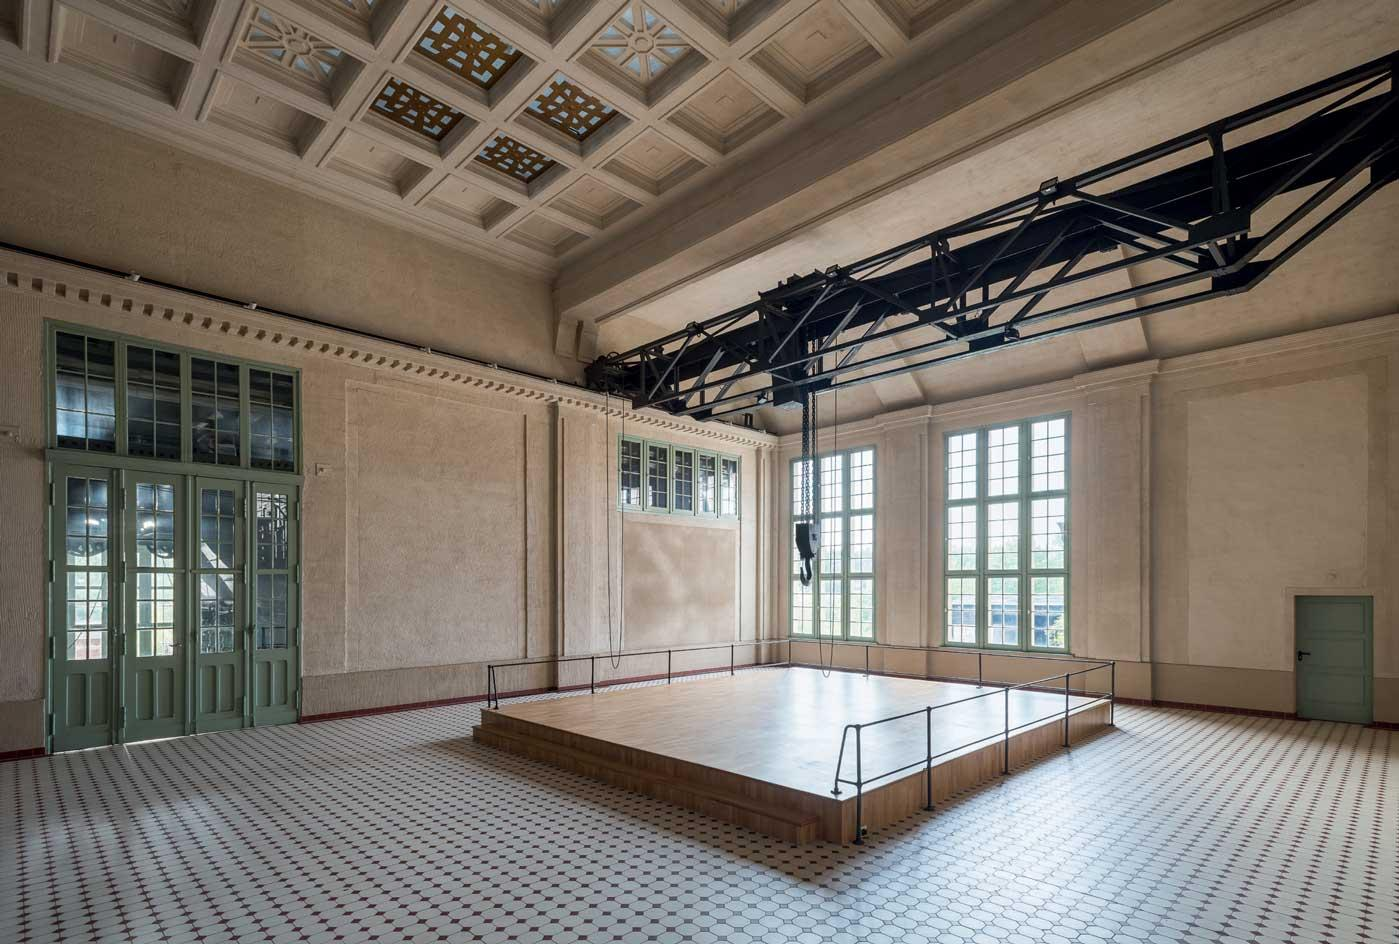 E-Werk's Turbine Hall today, which plays host to a roster of performance artists. Photography:Stefan Korte, shot for Wallpaper'sOctober 2019 issue